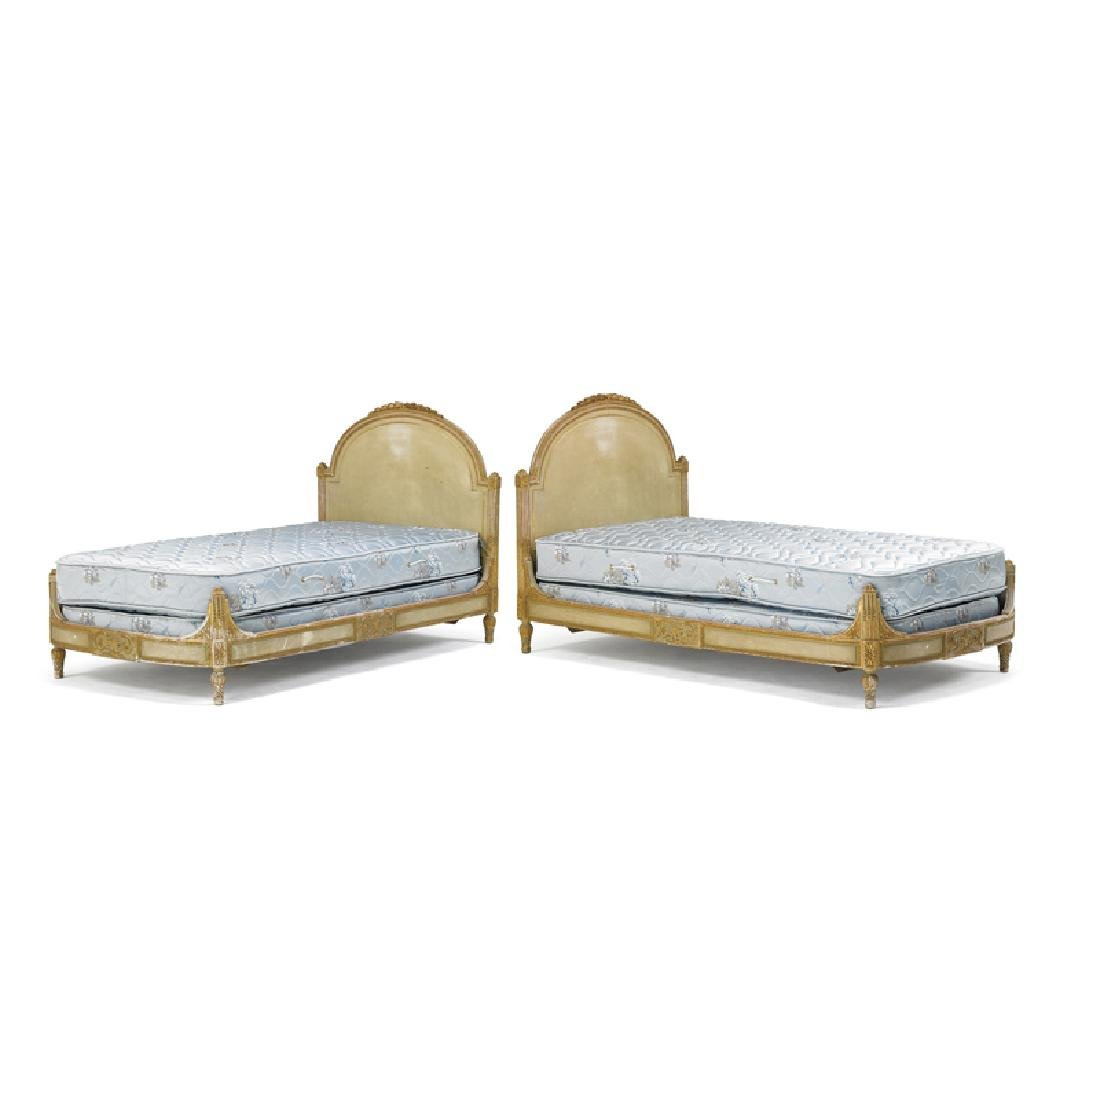 PAIR OF LOUIS XVI STYLE TWIN BEDS